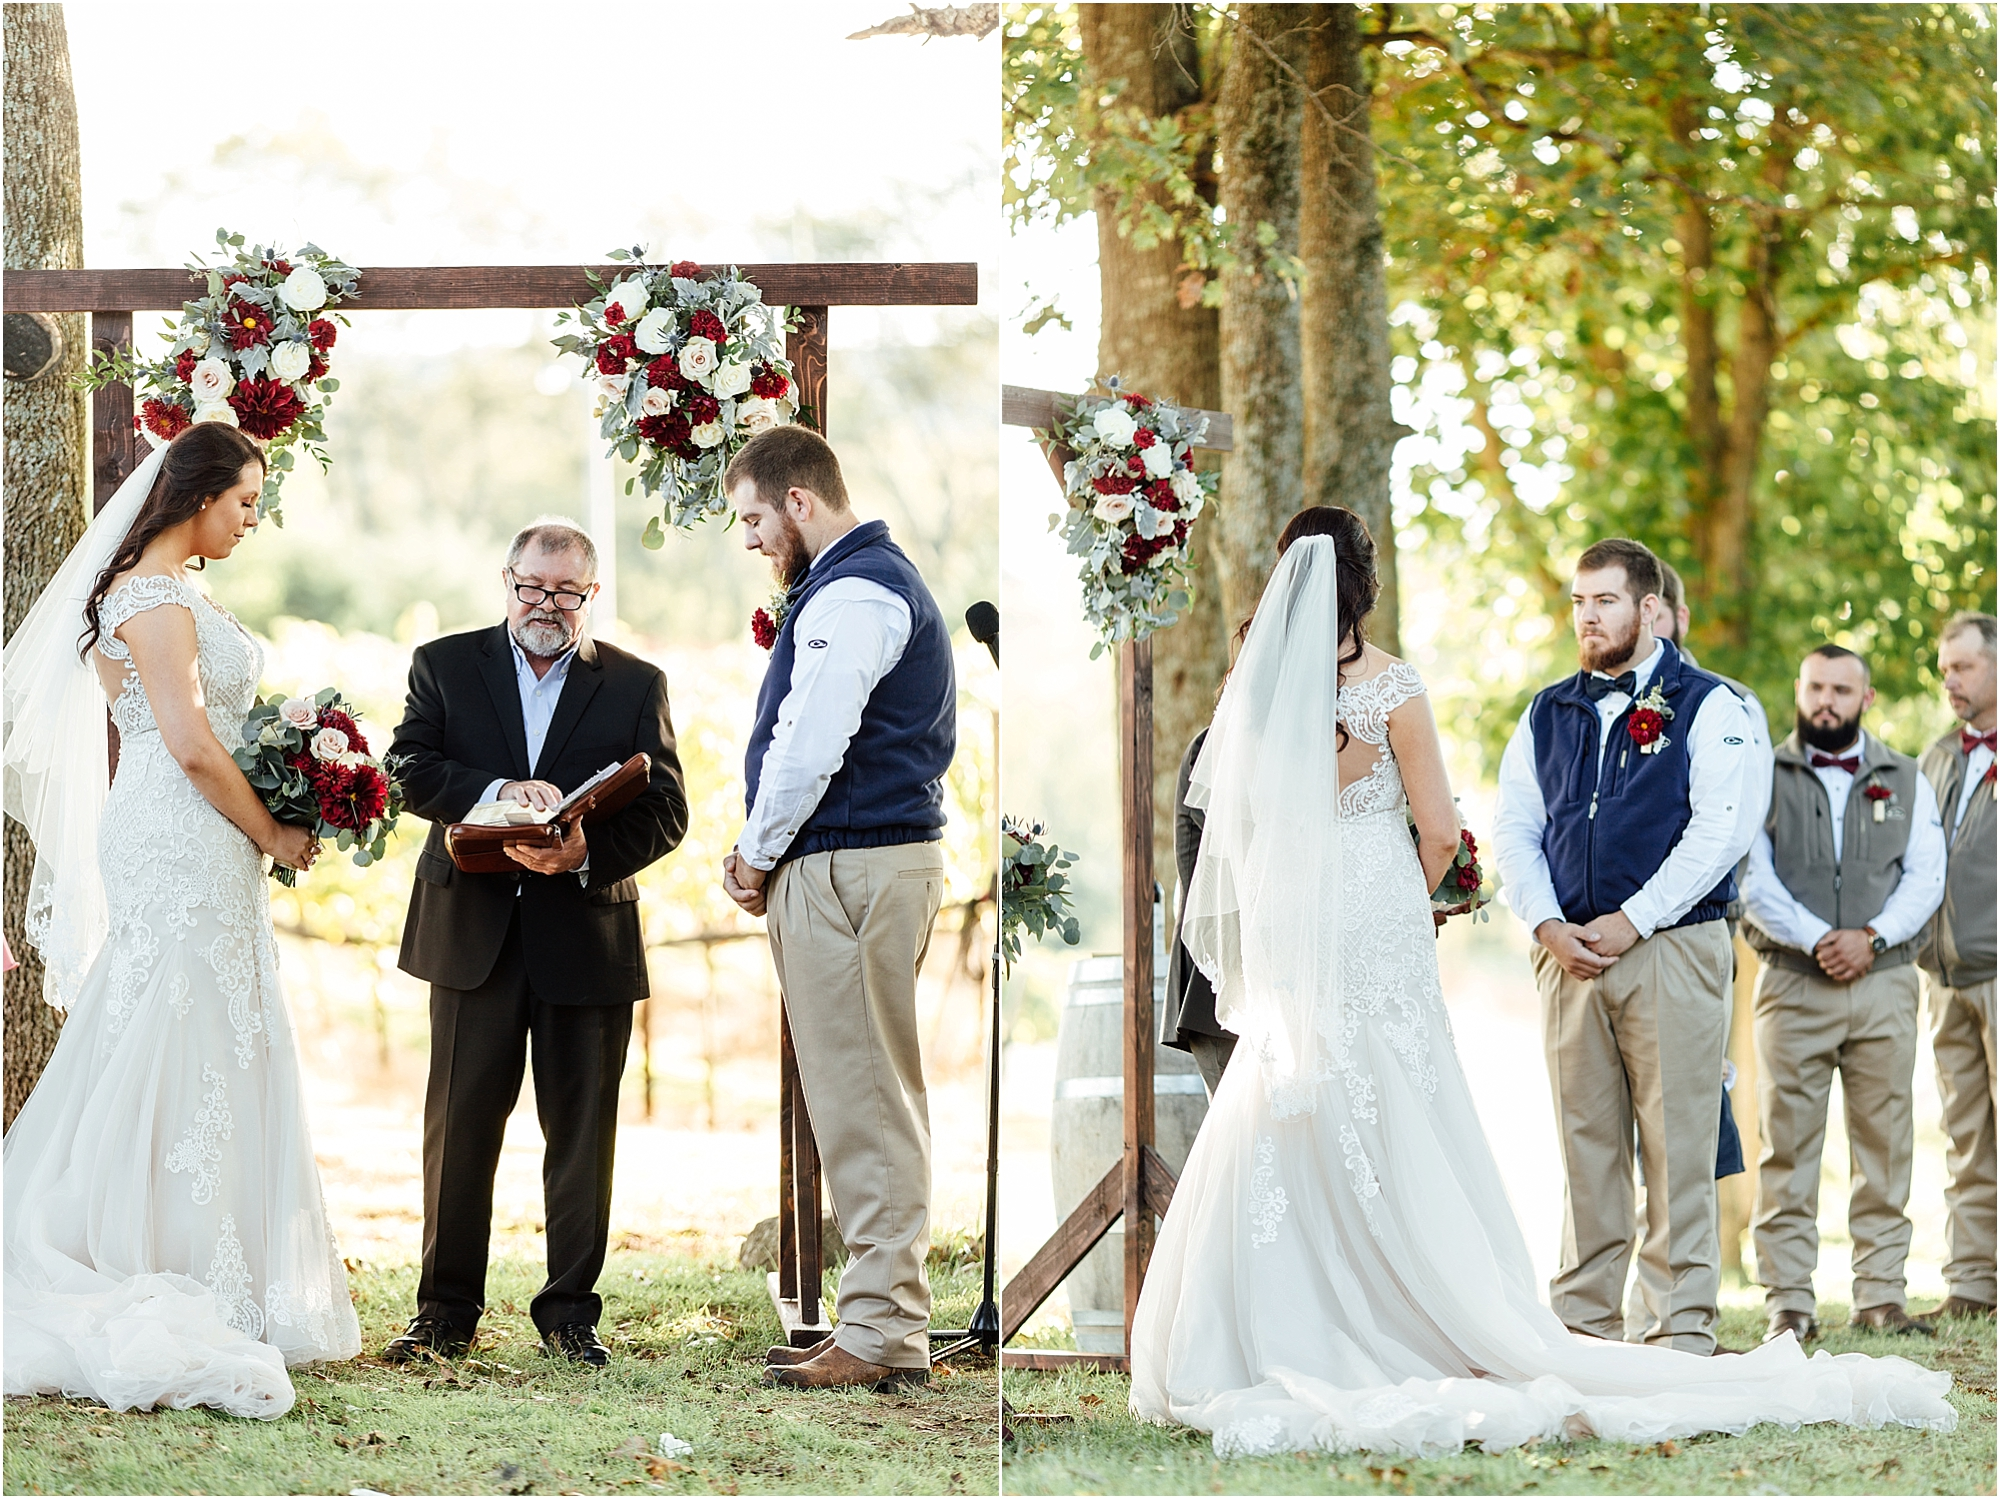 lindsey ann photography, arrington vineyards, arrington vineyard wedding, birmingham wedding photographer, wedding wire, the knot wedding, alabama wedding photographer, hoover wedding photographer